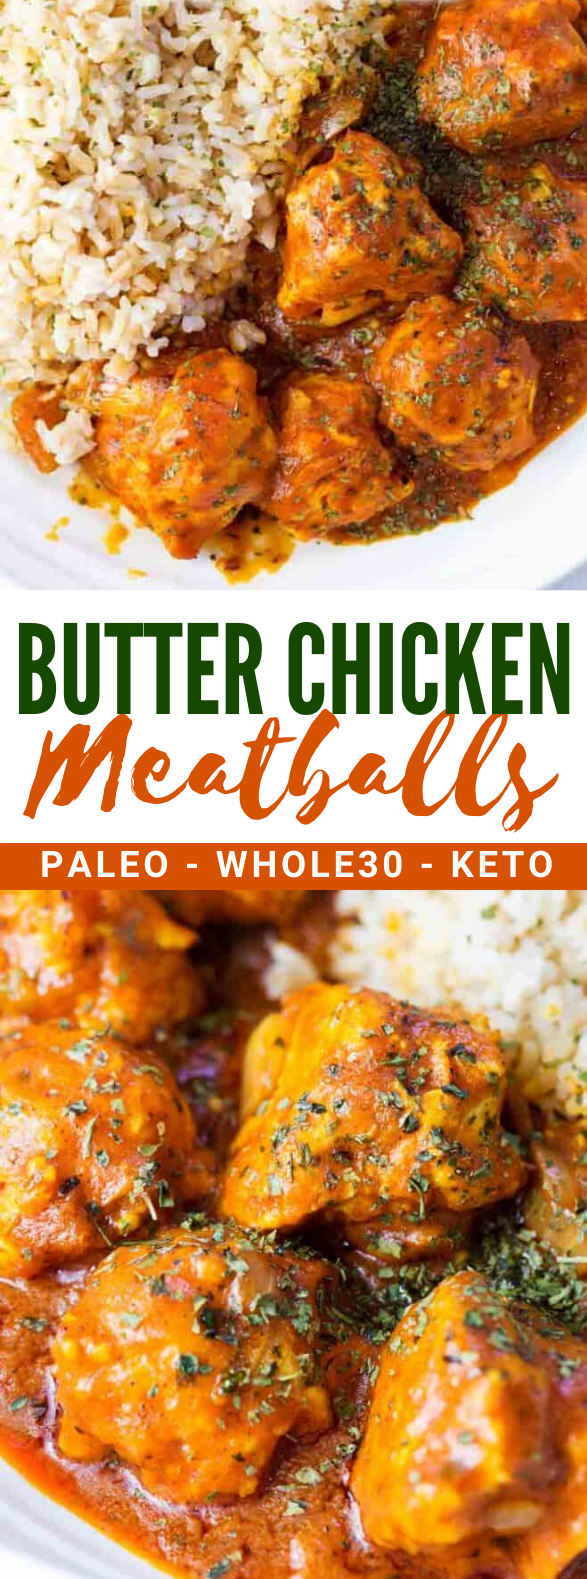 WHOLE30 BUTTER CHICKEN MEATBALLS #ketodiet #healthy